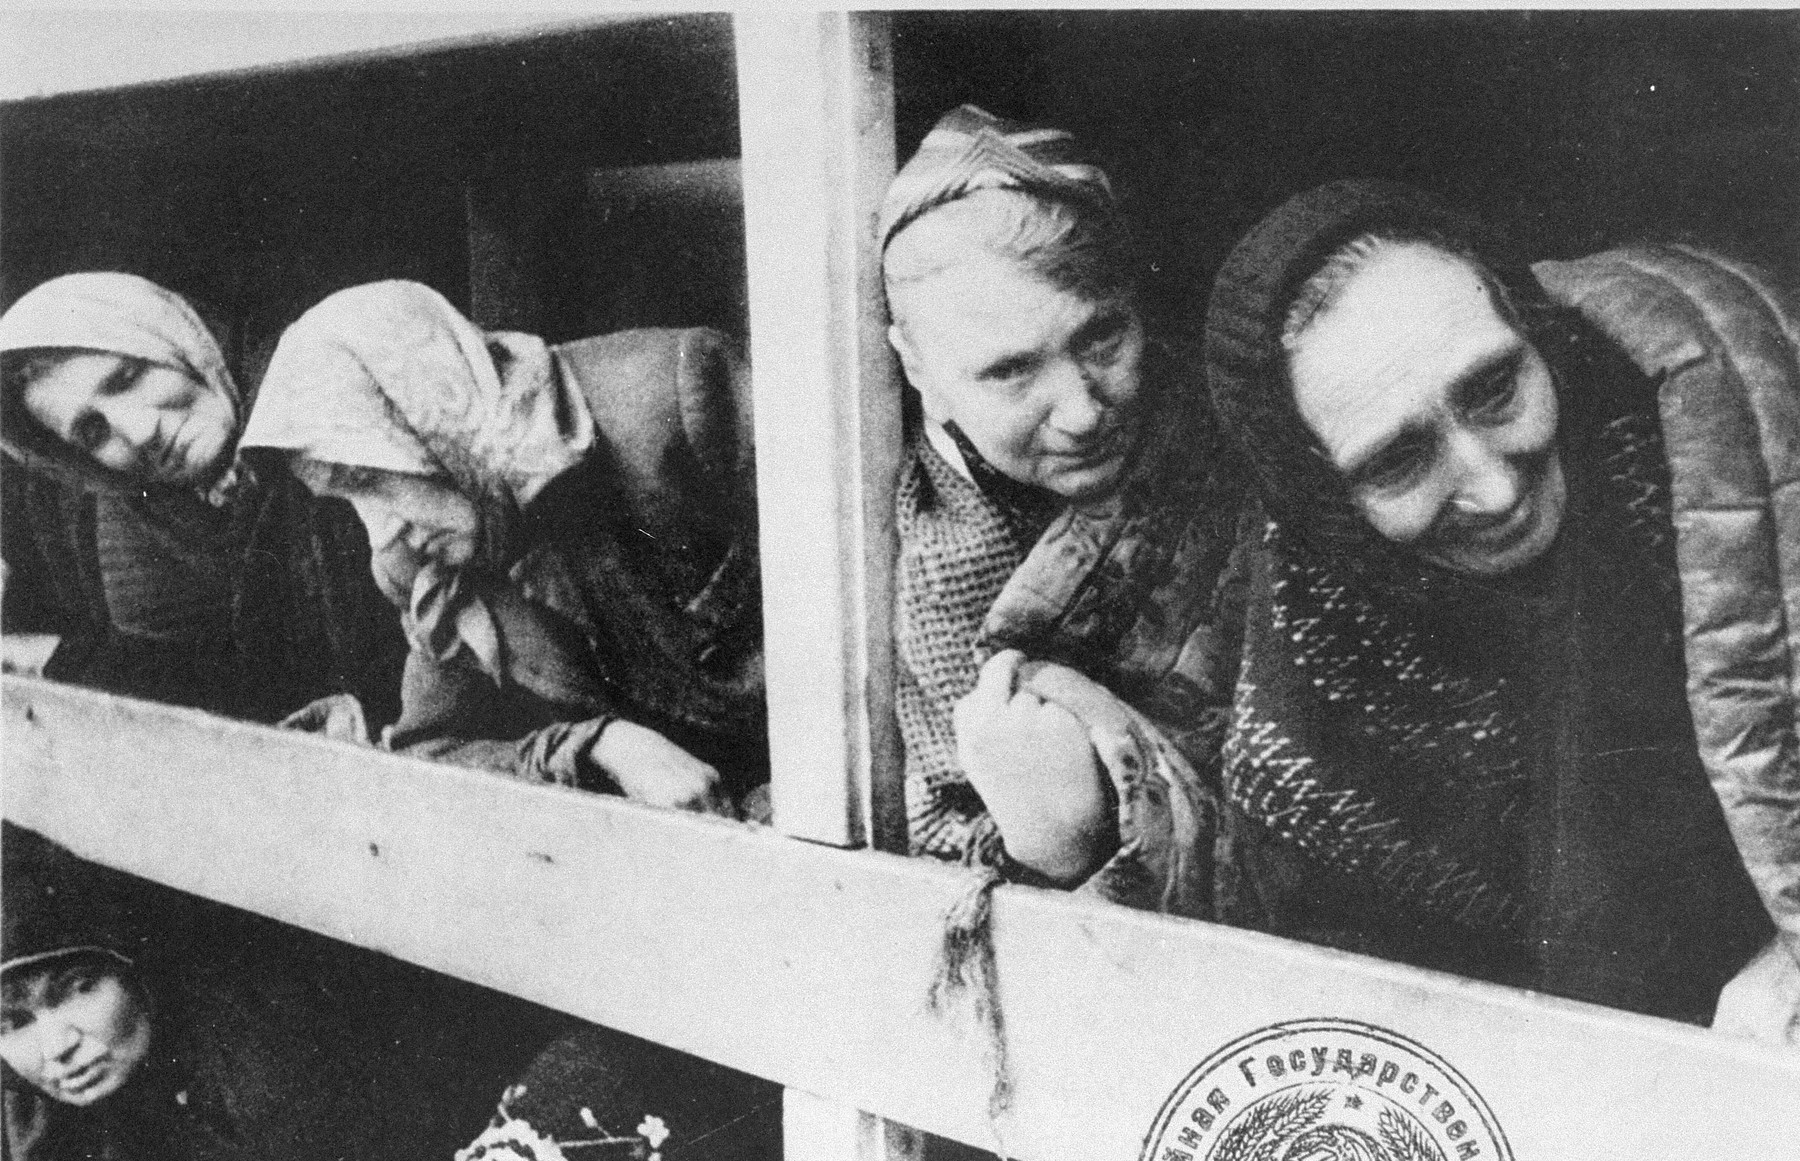 Former women-prisoners on the wooden bunks that served as beds, in Auschwitz concentration camp.   STILL PHOTOGRAPH FROM THE SOVIET FILM of the liberation of Auschwitz, taken by the film unit of the First Ukrainian Front.  One of the woman has been identified as Rivka Ruchle nee Krause.Wysoki.